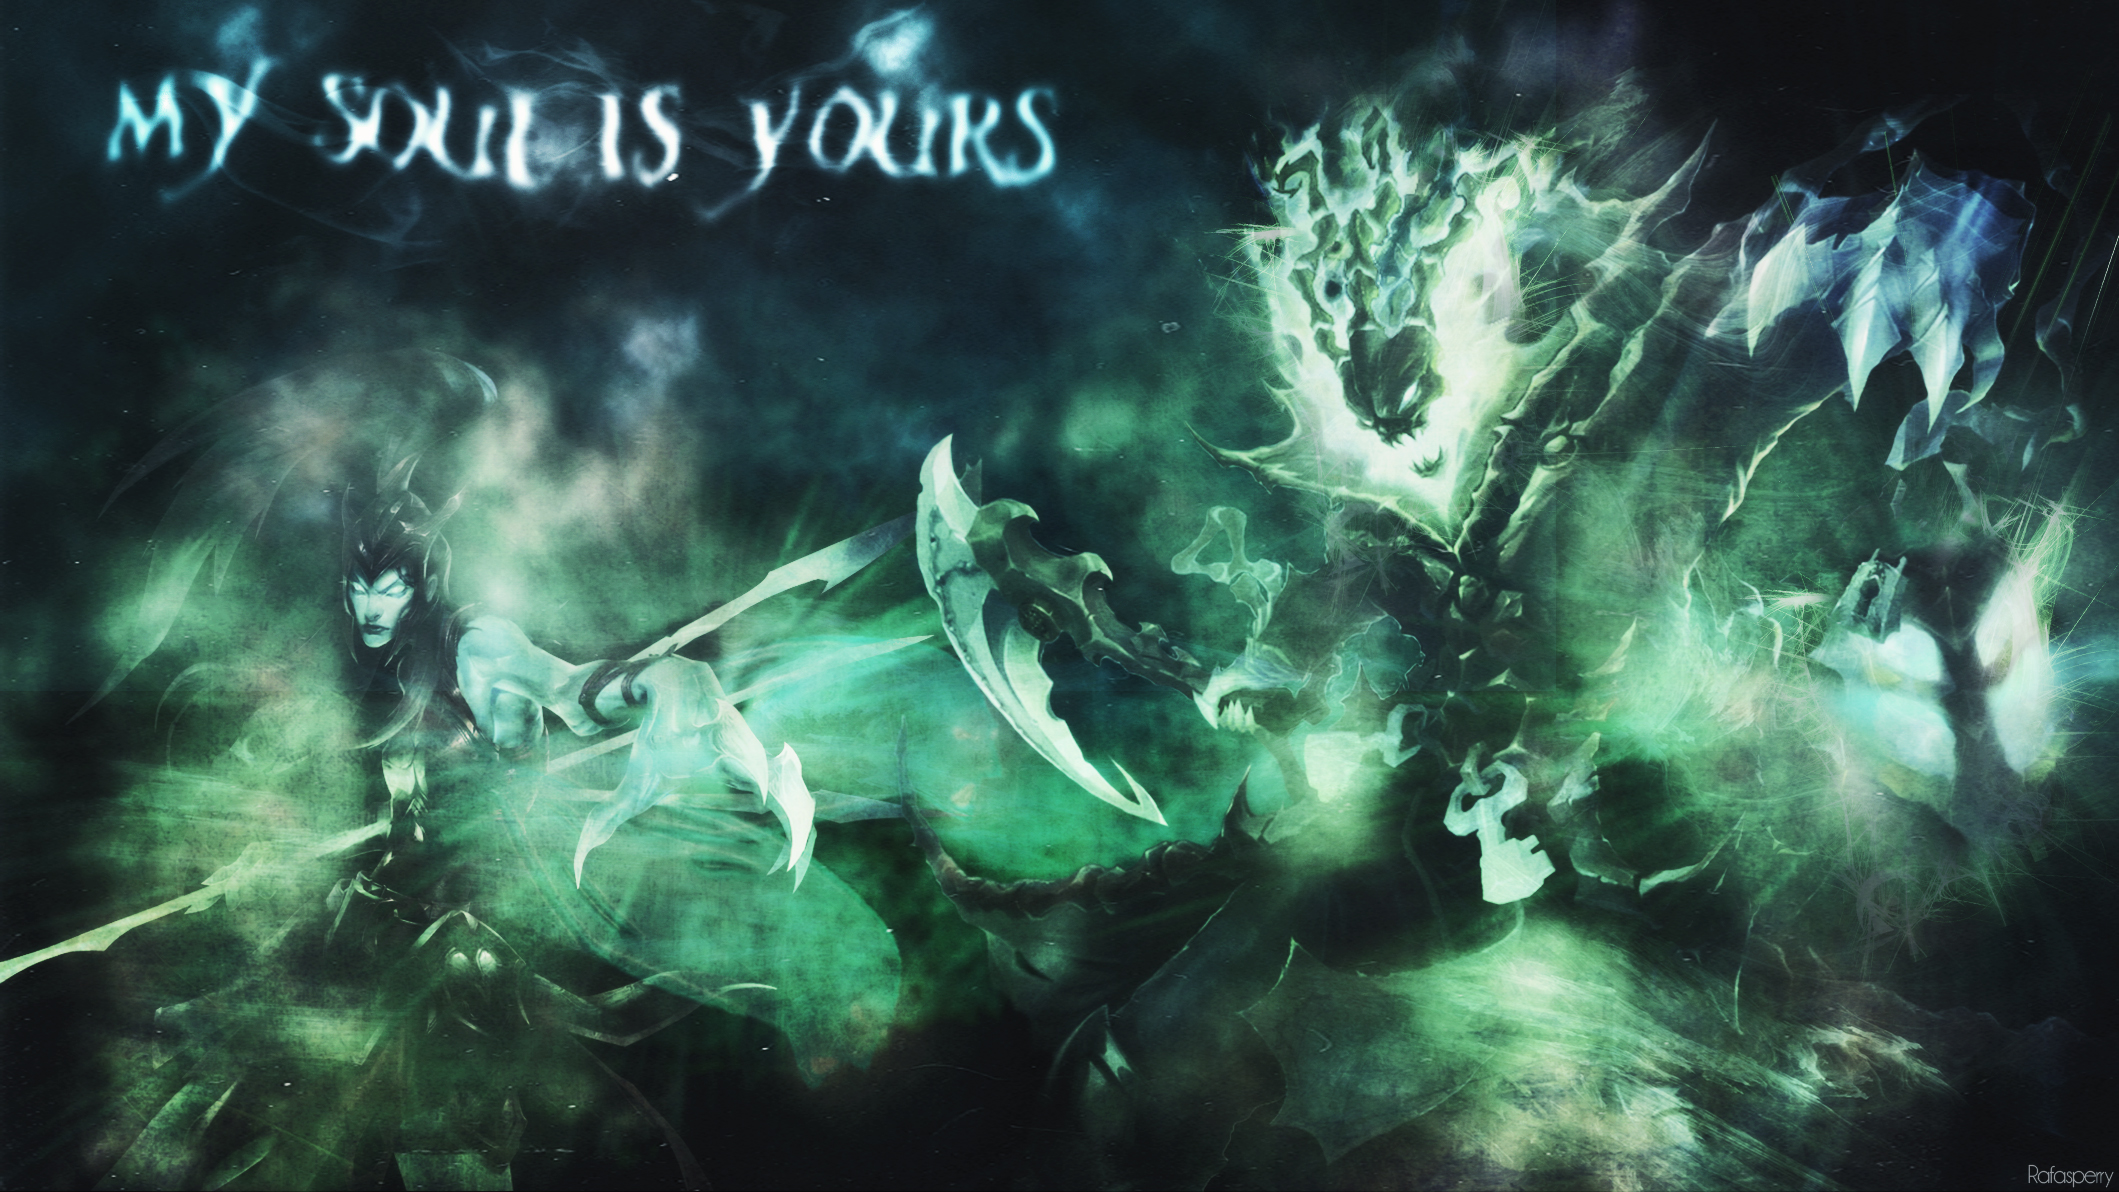 kalista_and_thresh_by_rafasperry-d95230t